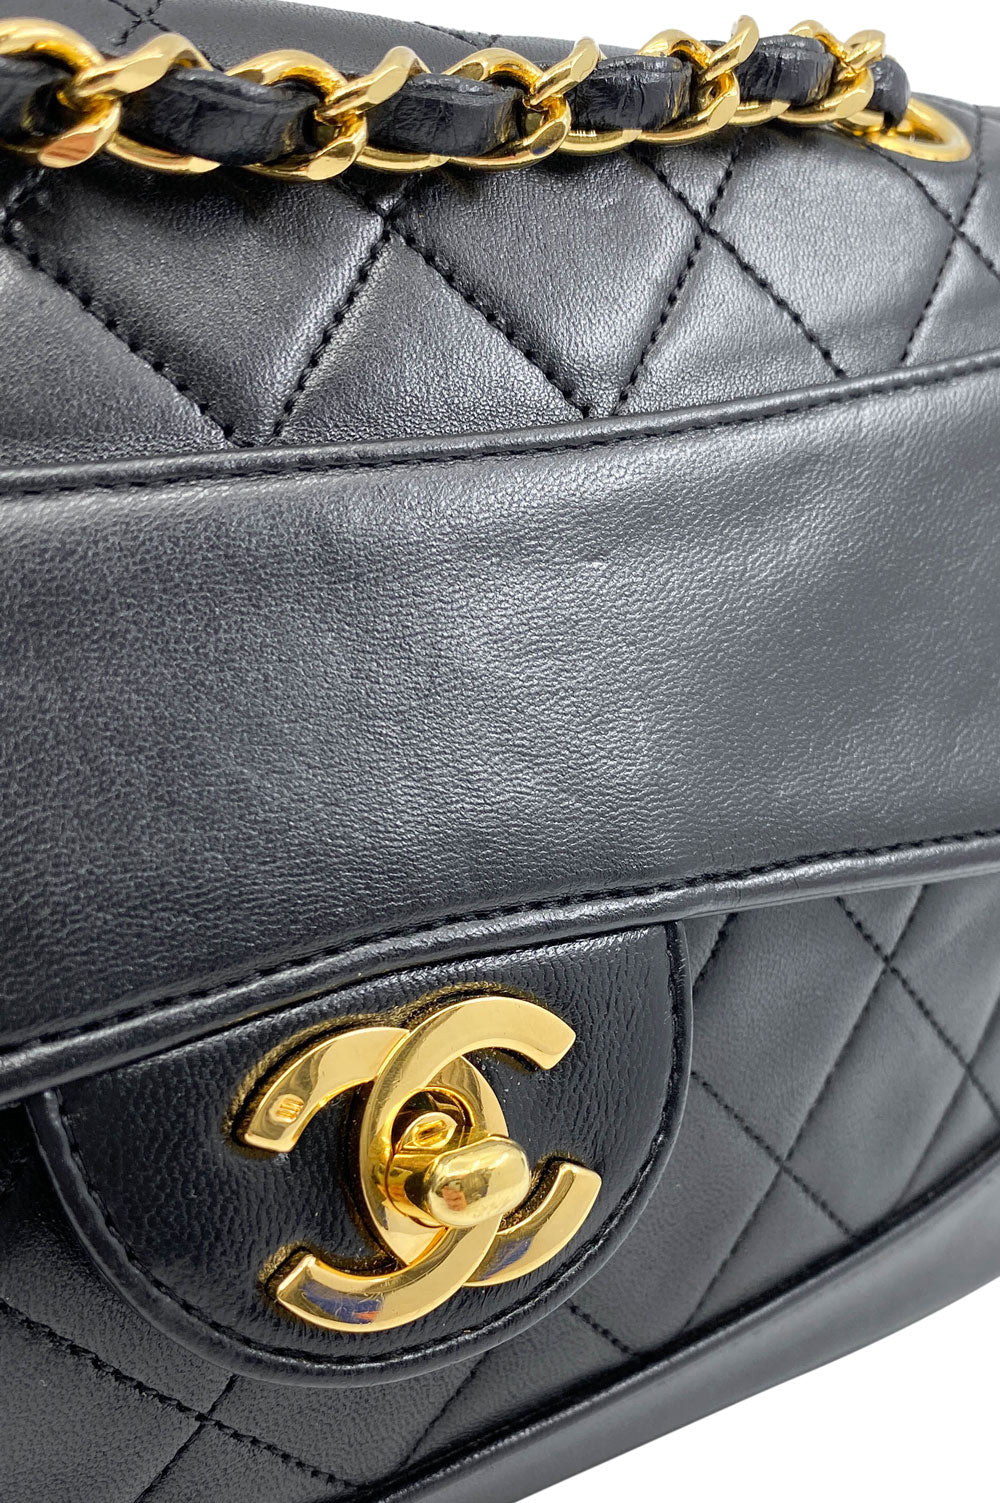 CHANEL Vintage Flap Bag Black